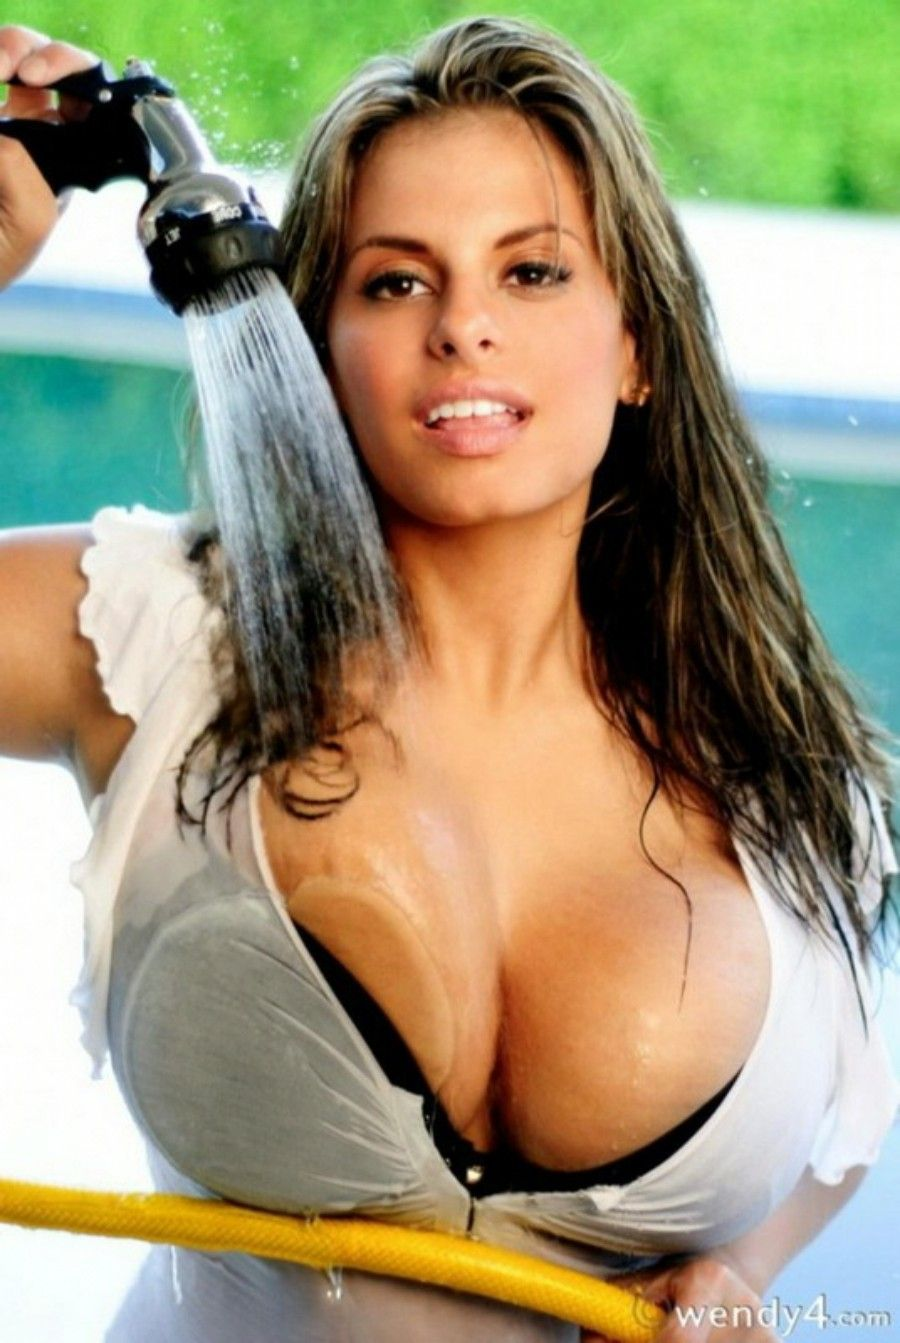 girls with big tites - google search | wendy fiore | pinterest | car